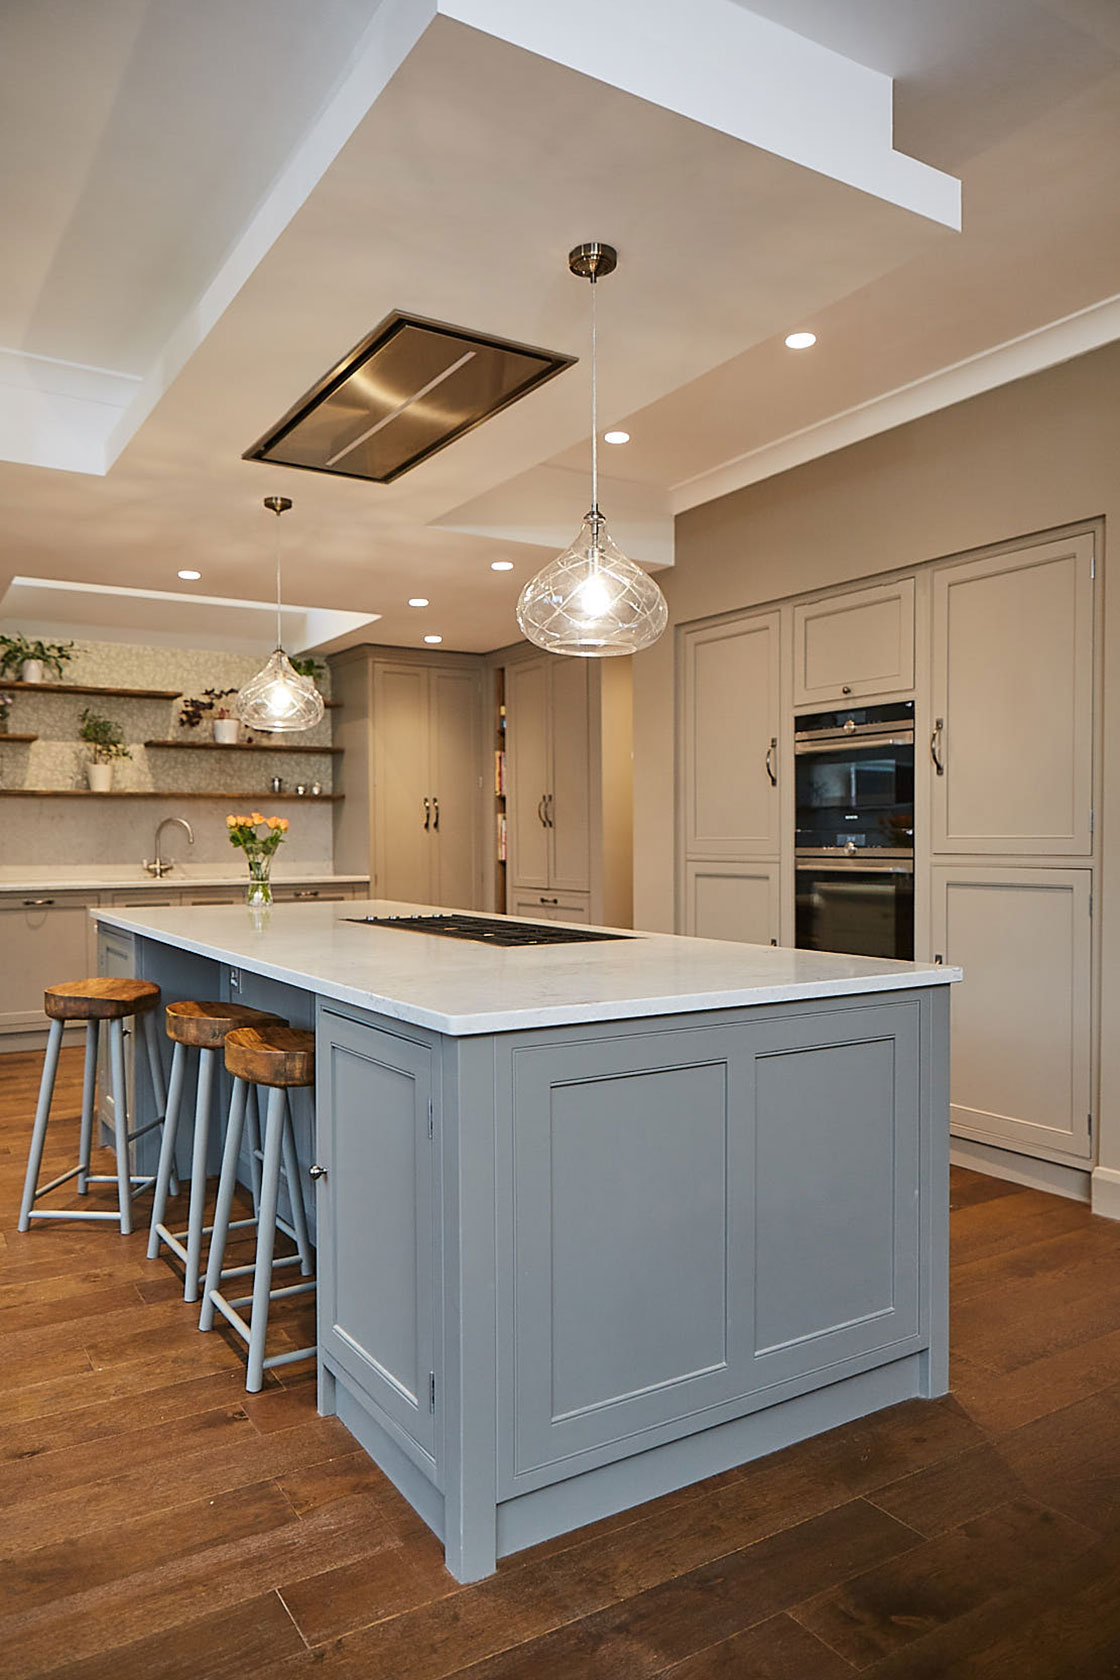 Kitchen island with flush extractor in ceiling